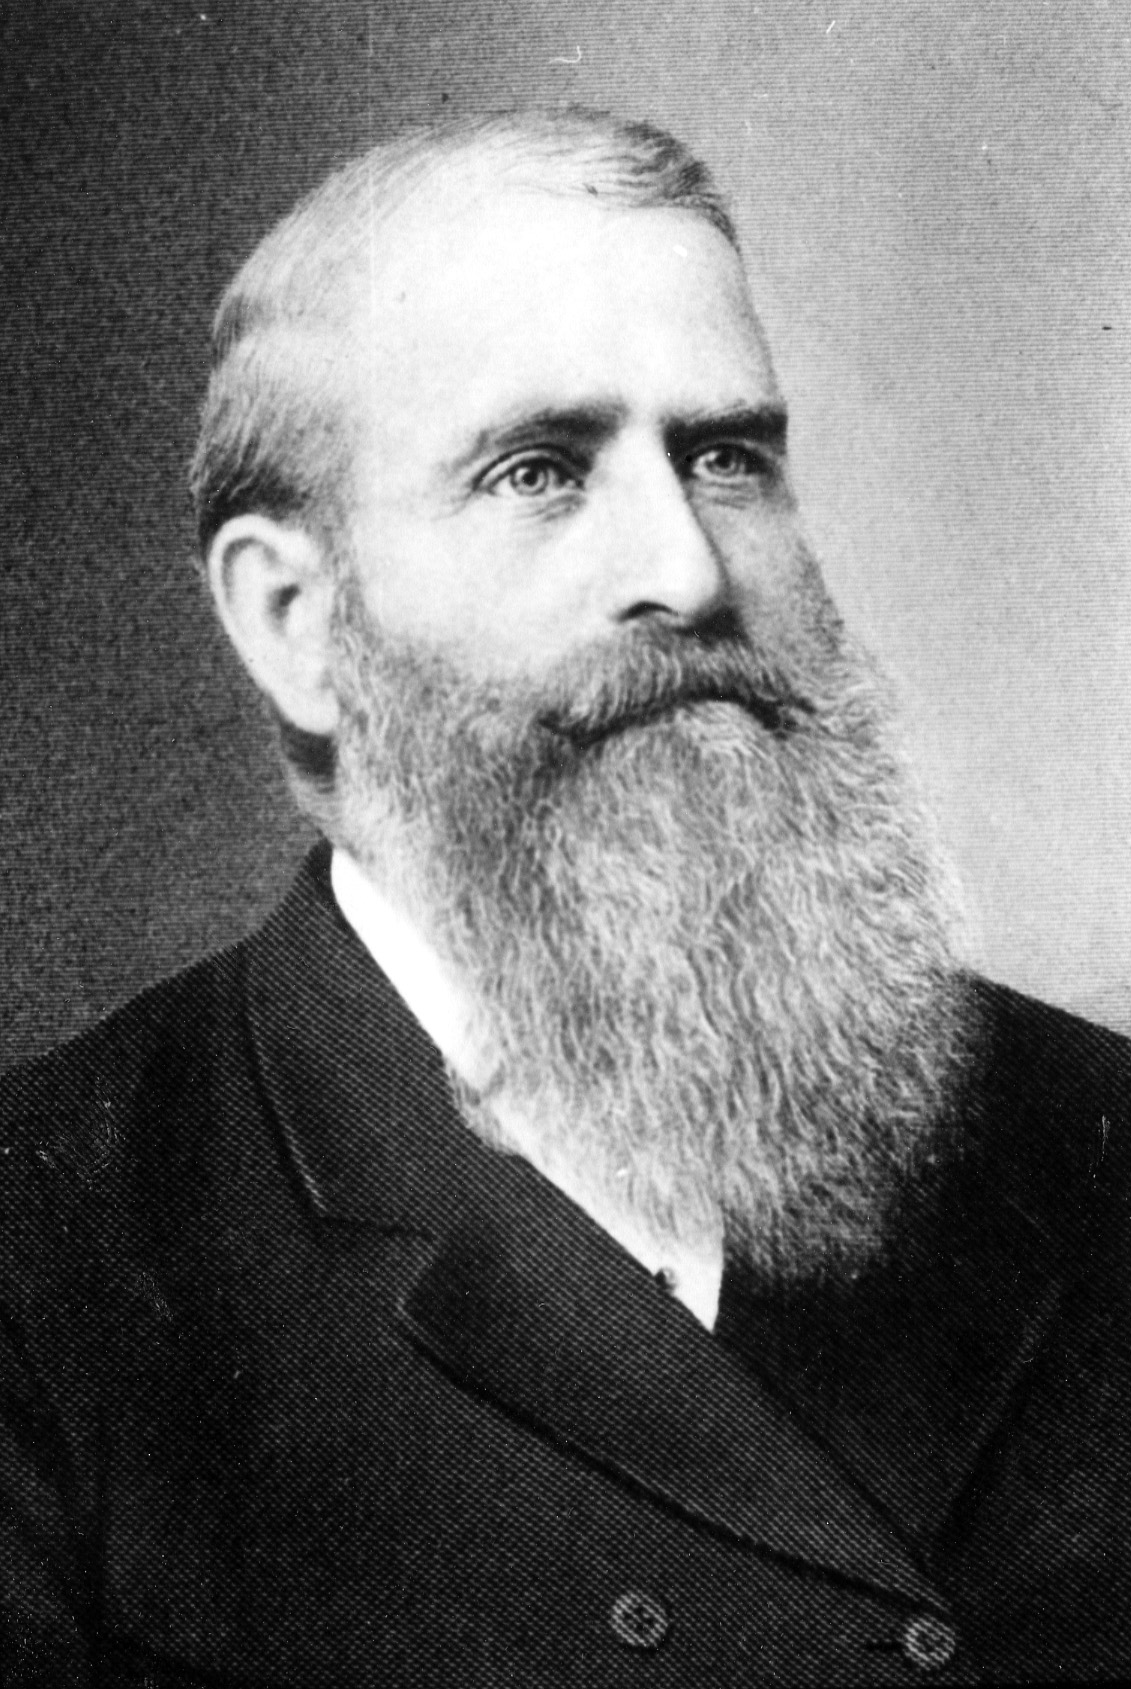 Head and shoulders portrait of colonizer and regional Mormon leader, Charles Ora Card, likely taken in the 1880s.  Photo courtesy the Galt Museum & Archives,  19851055000 .